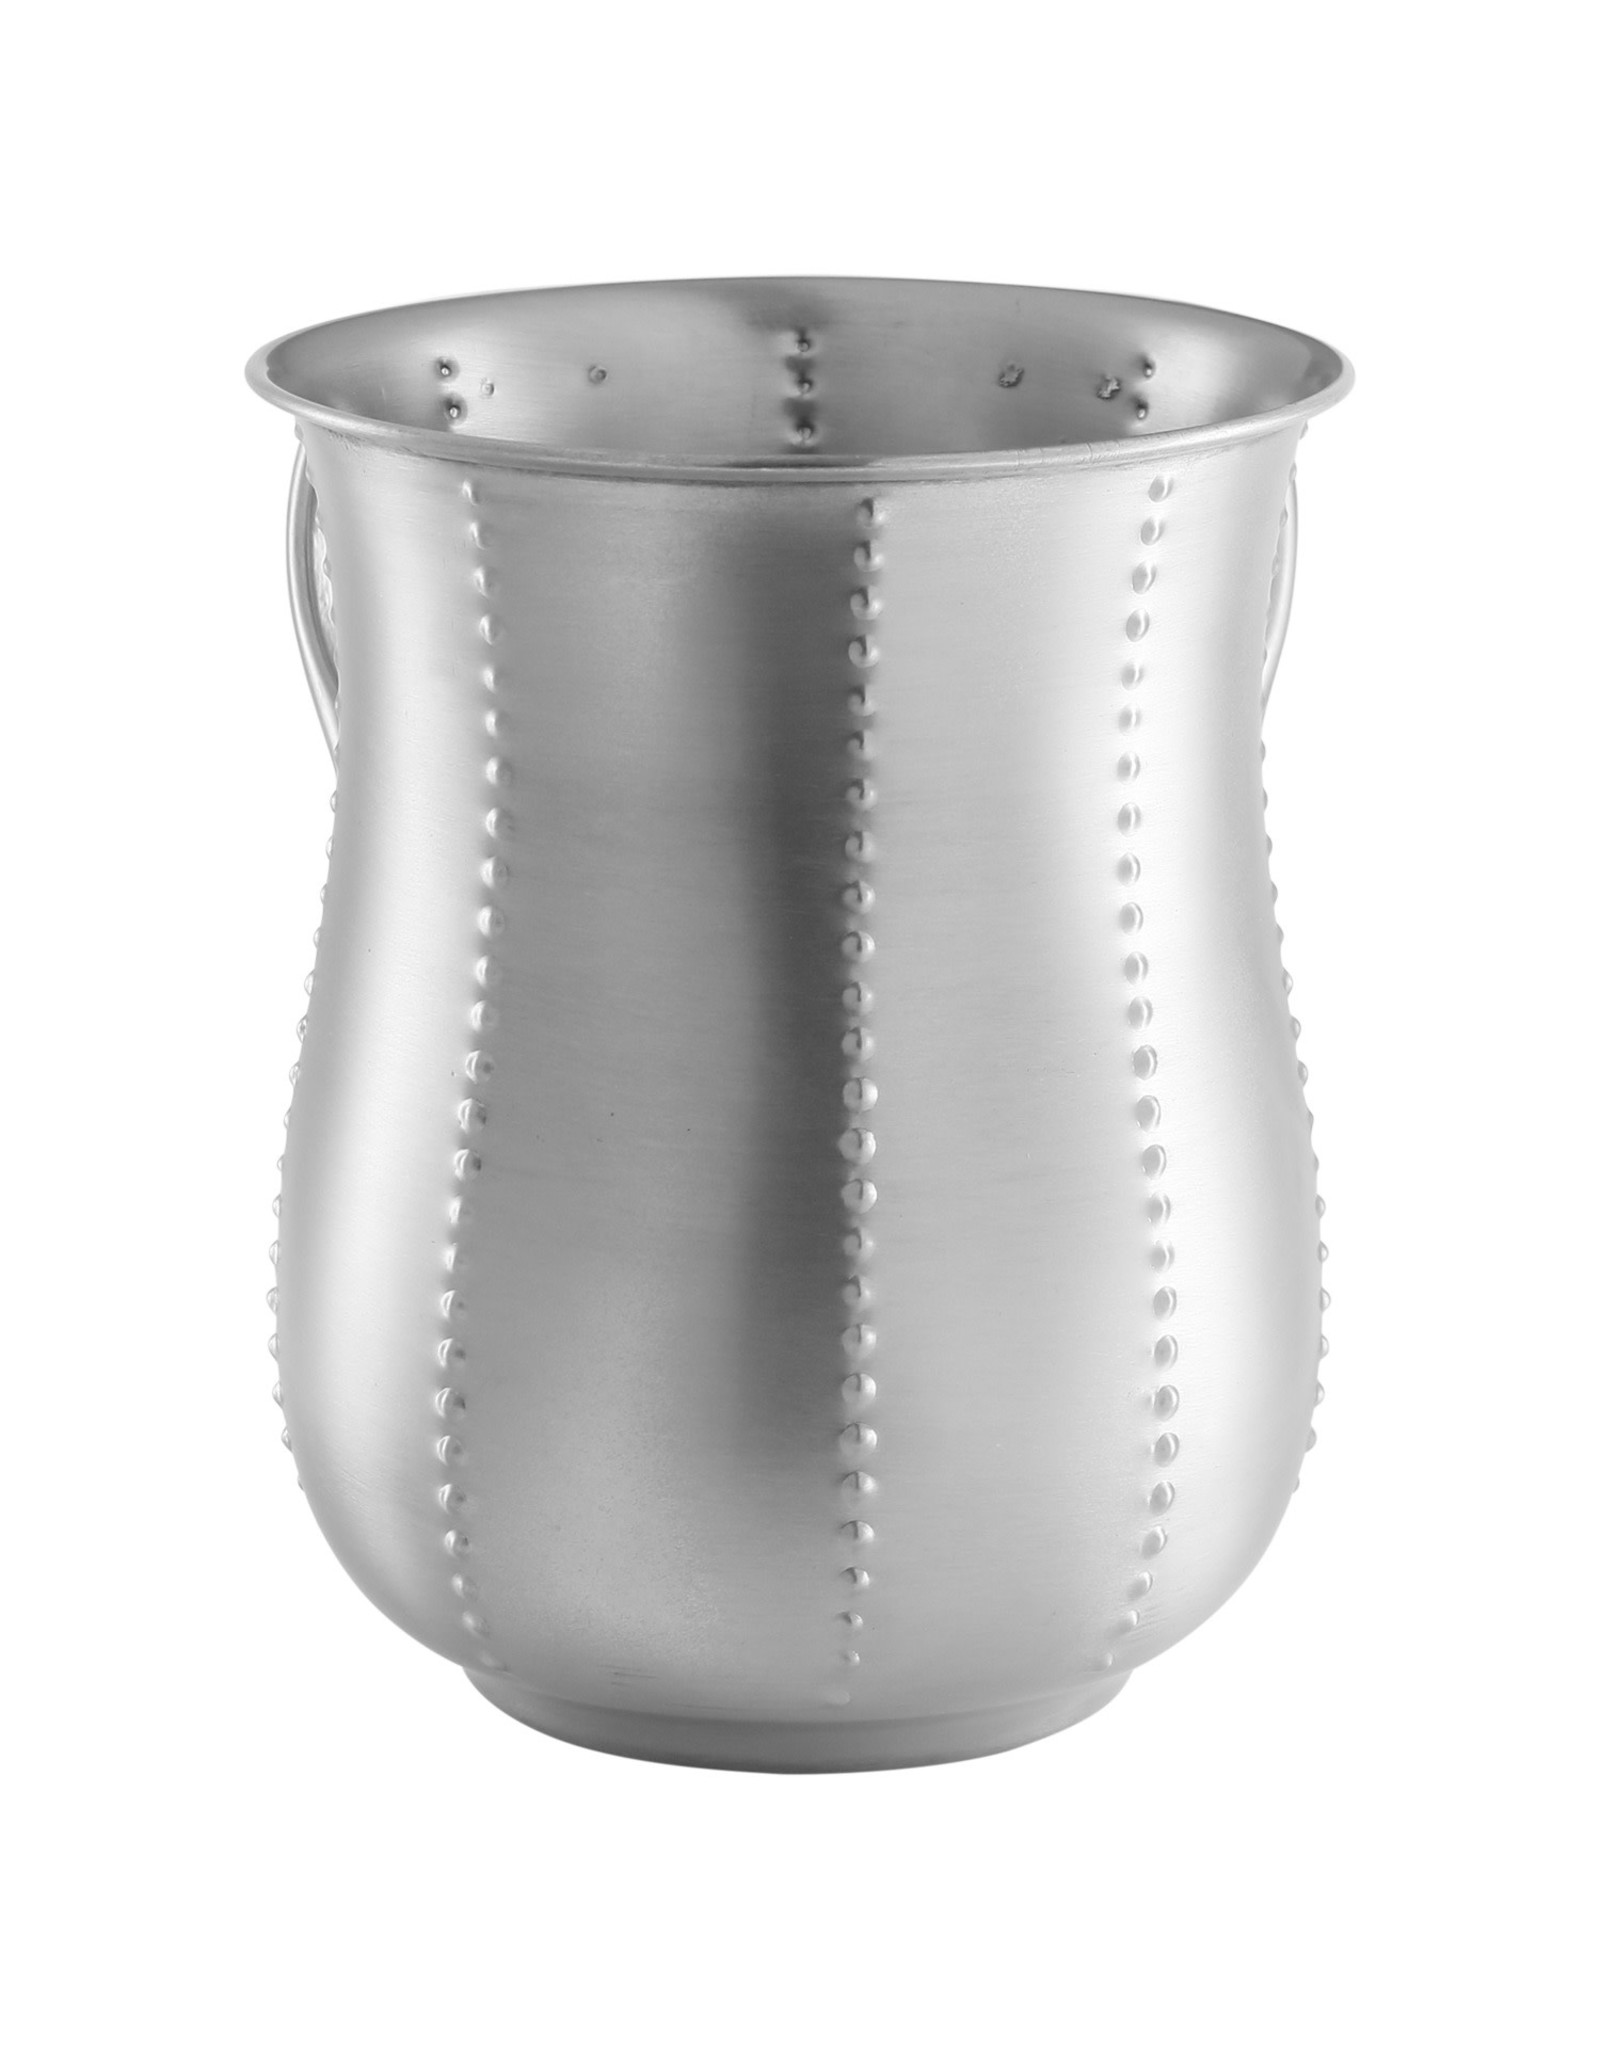 56963 Stainless Steel Matt Wash Cup w Dotted Stripes